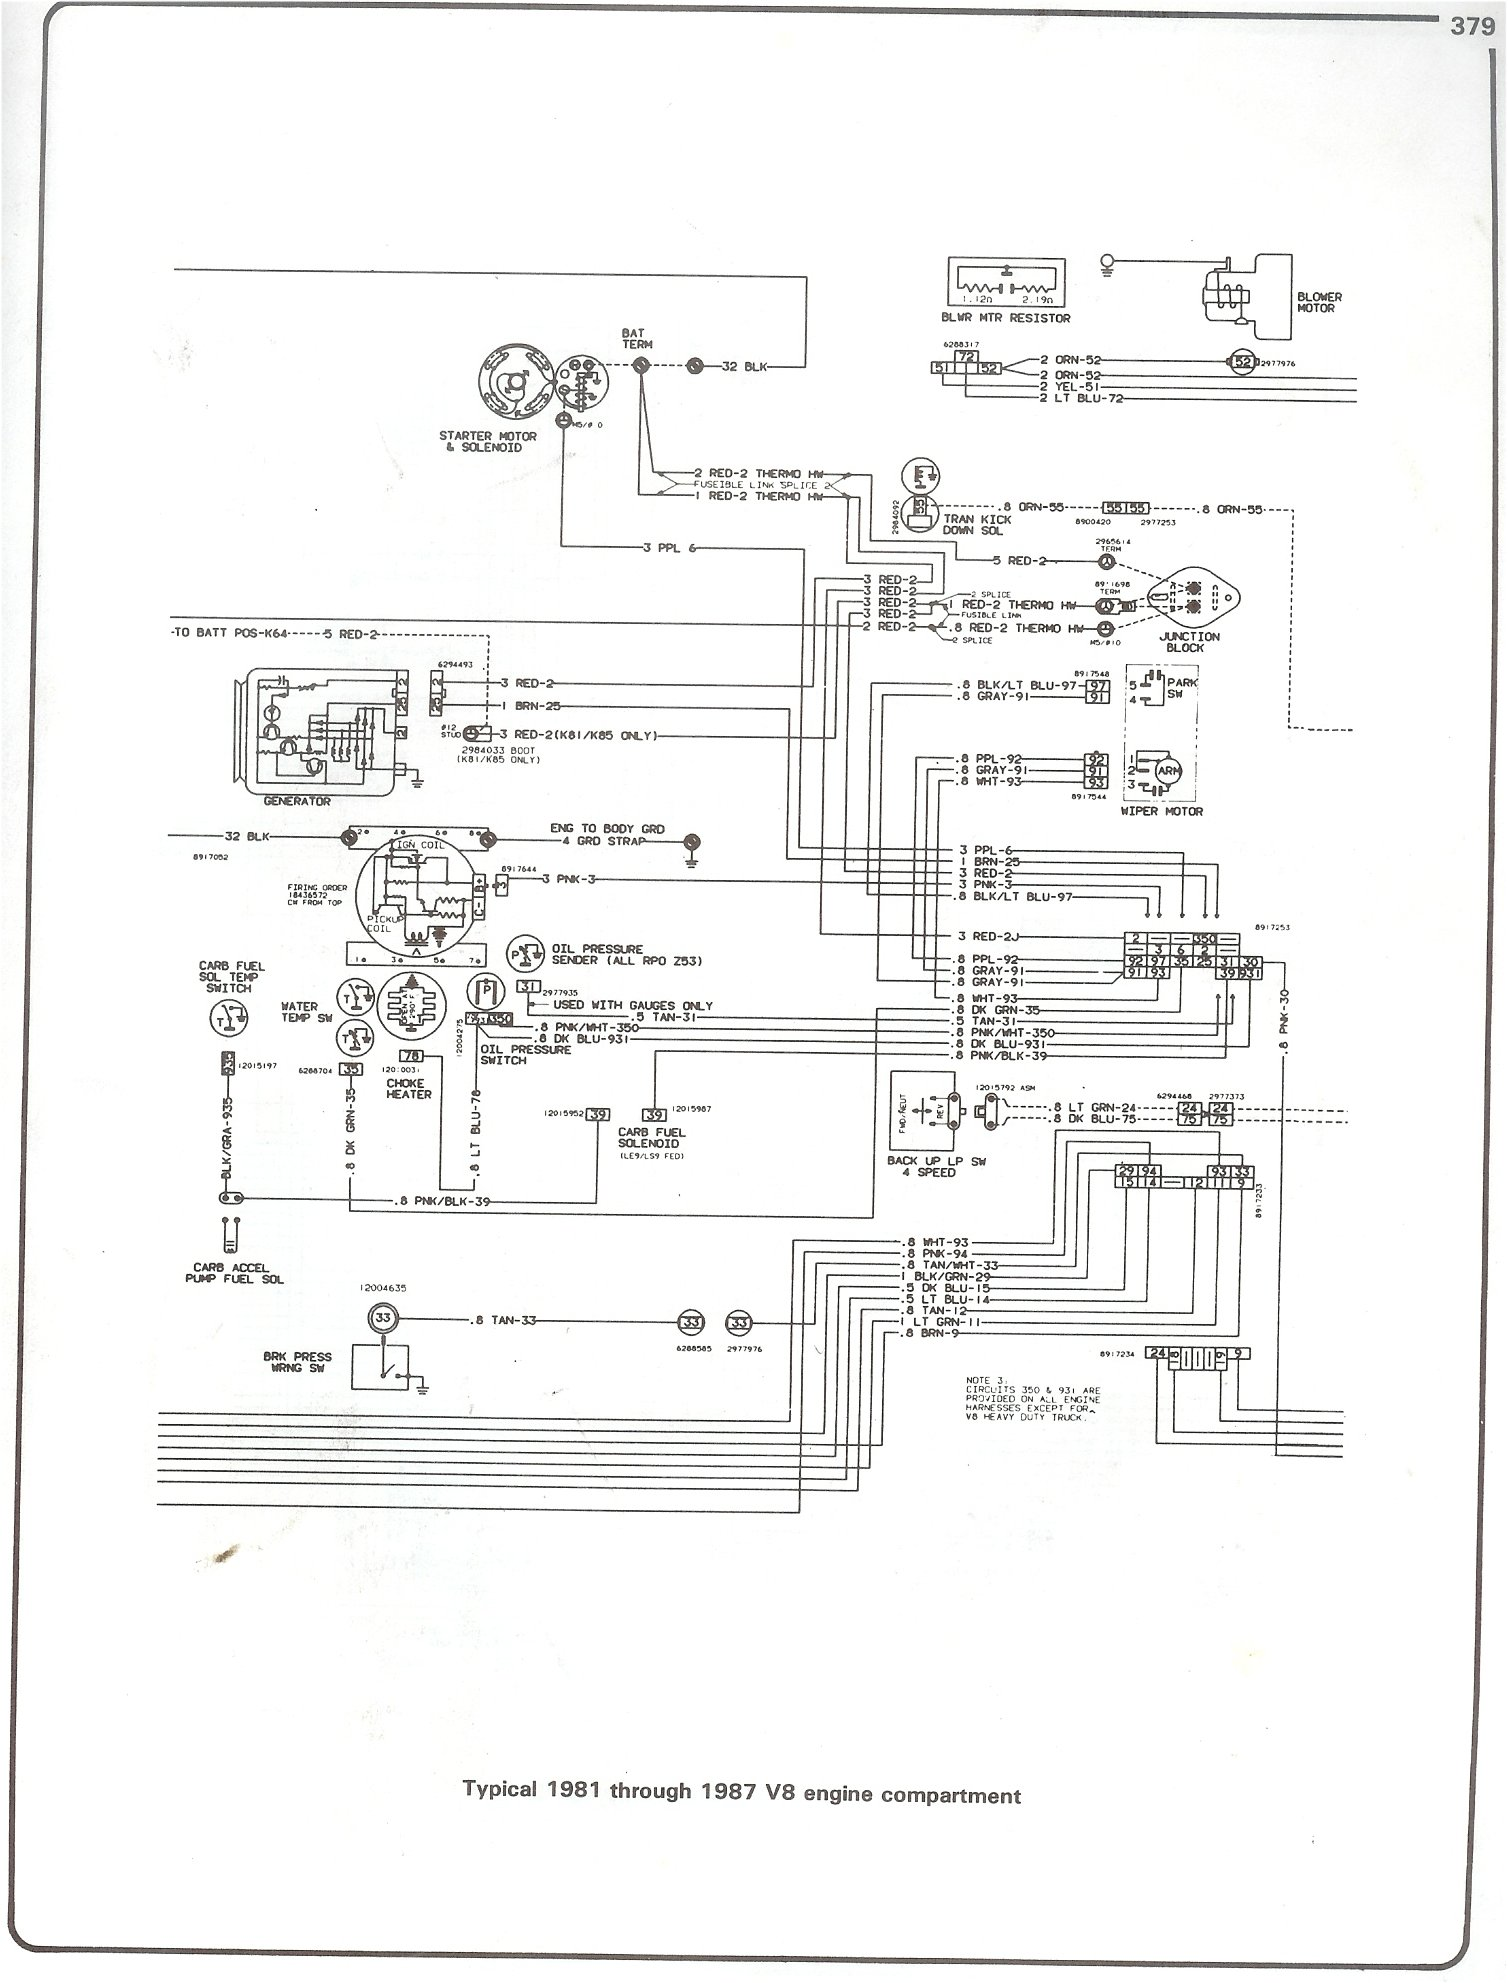 81 87_V8_engine complete 73 87 wiring diagrams Single Phase Compressor Wiring Diagram at bayanpartner.co